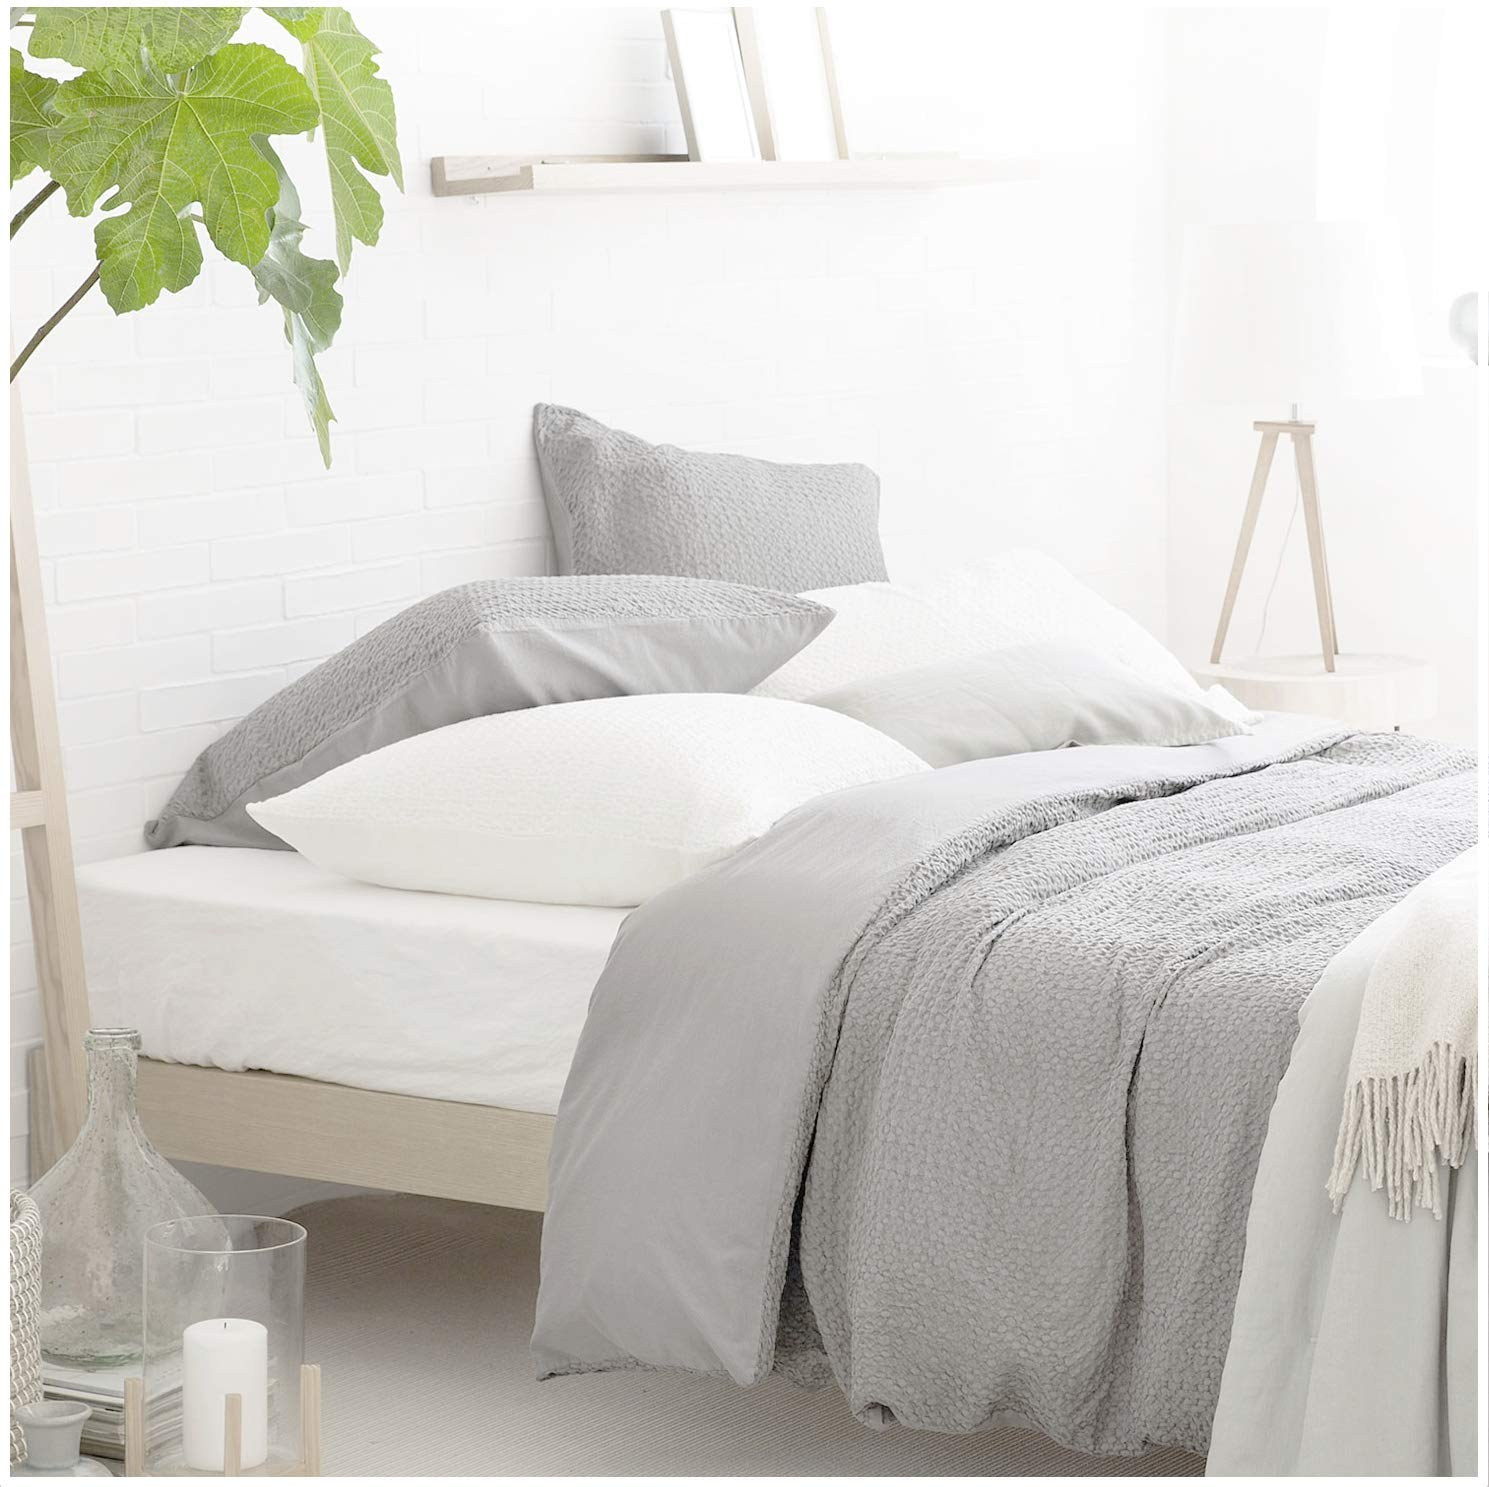 Nicole Miller Home 3pc Full Queen Preppy Squares Seersucker Duvet Cover and Shams Set Modern Grey Gray Ruched Textured Duvet Cover